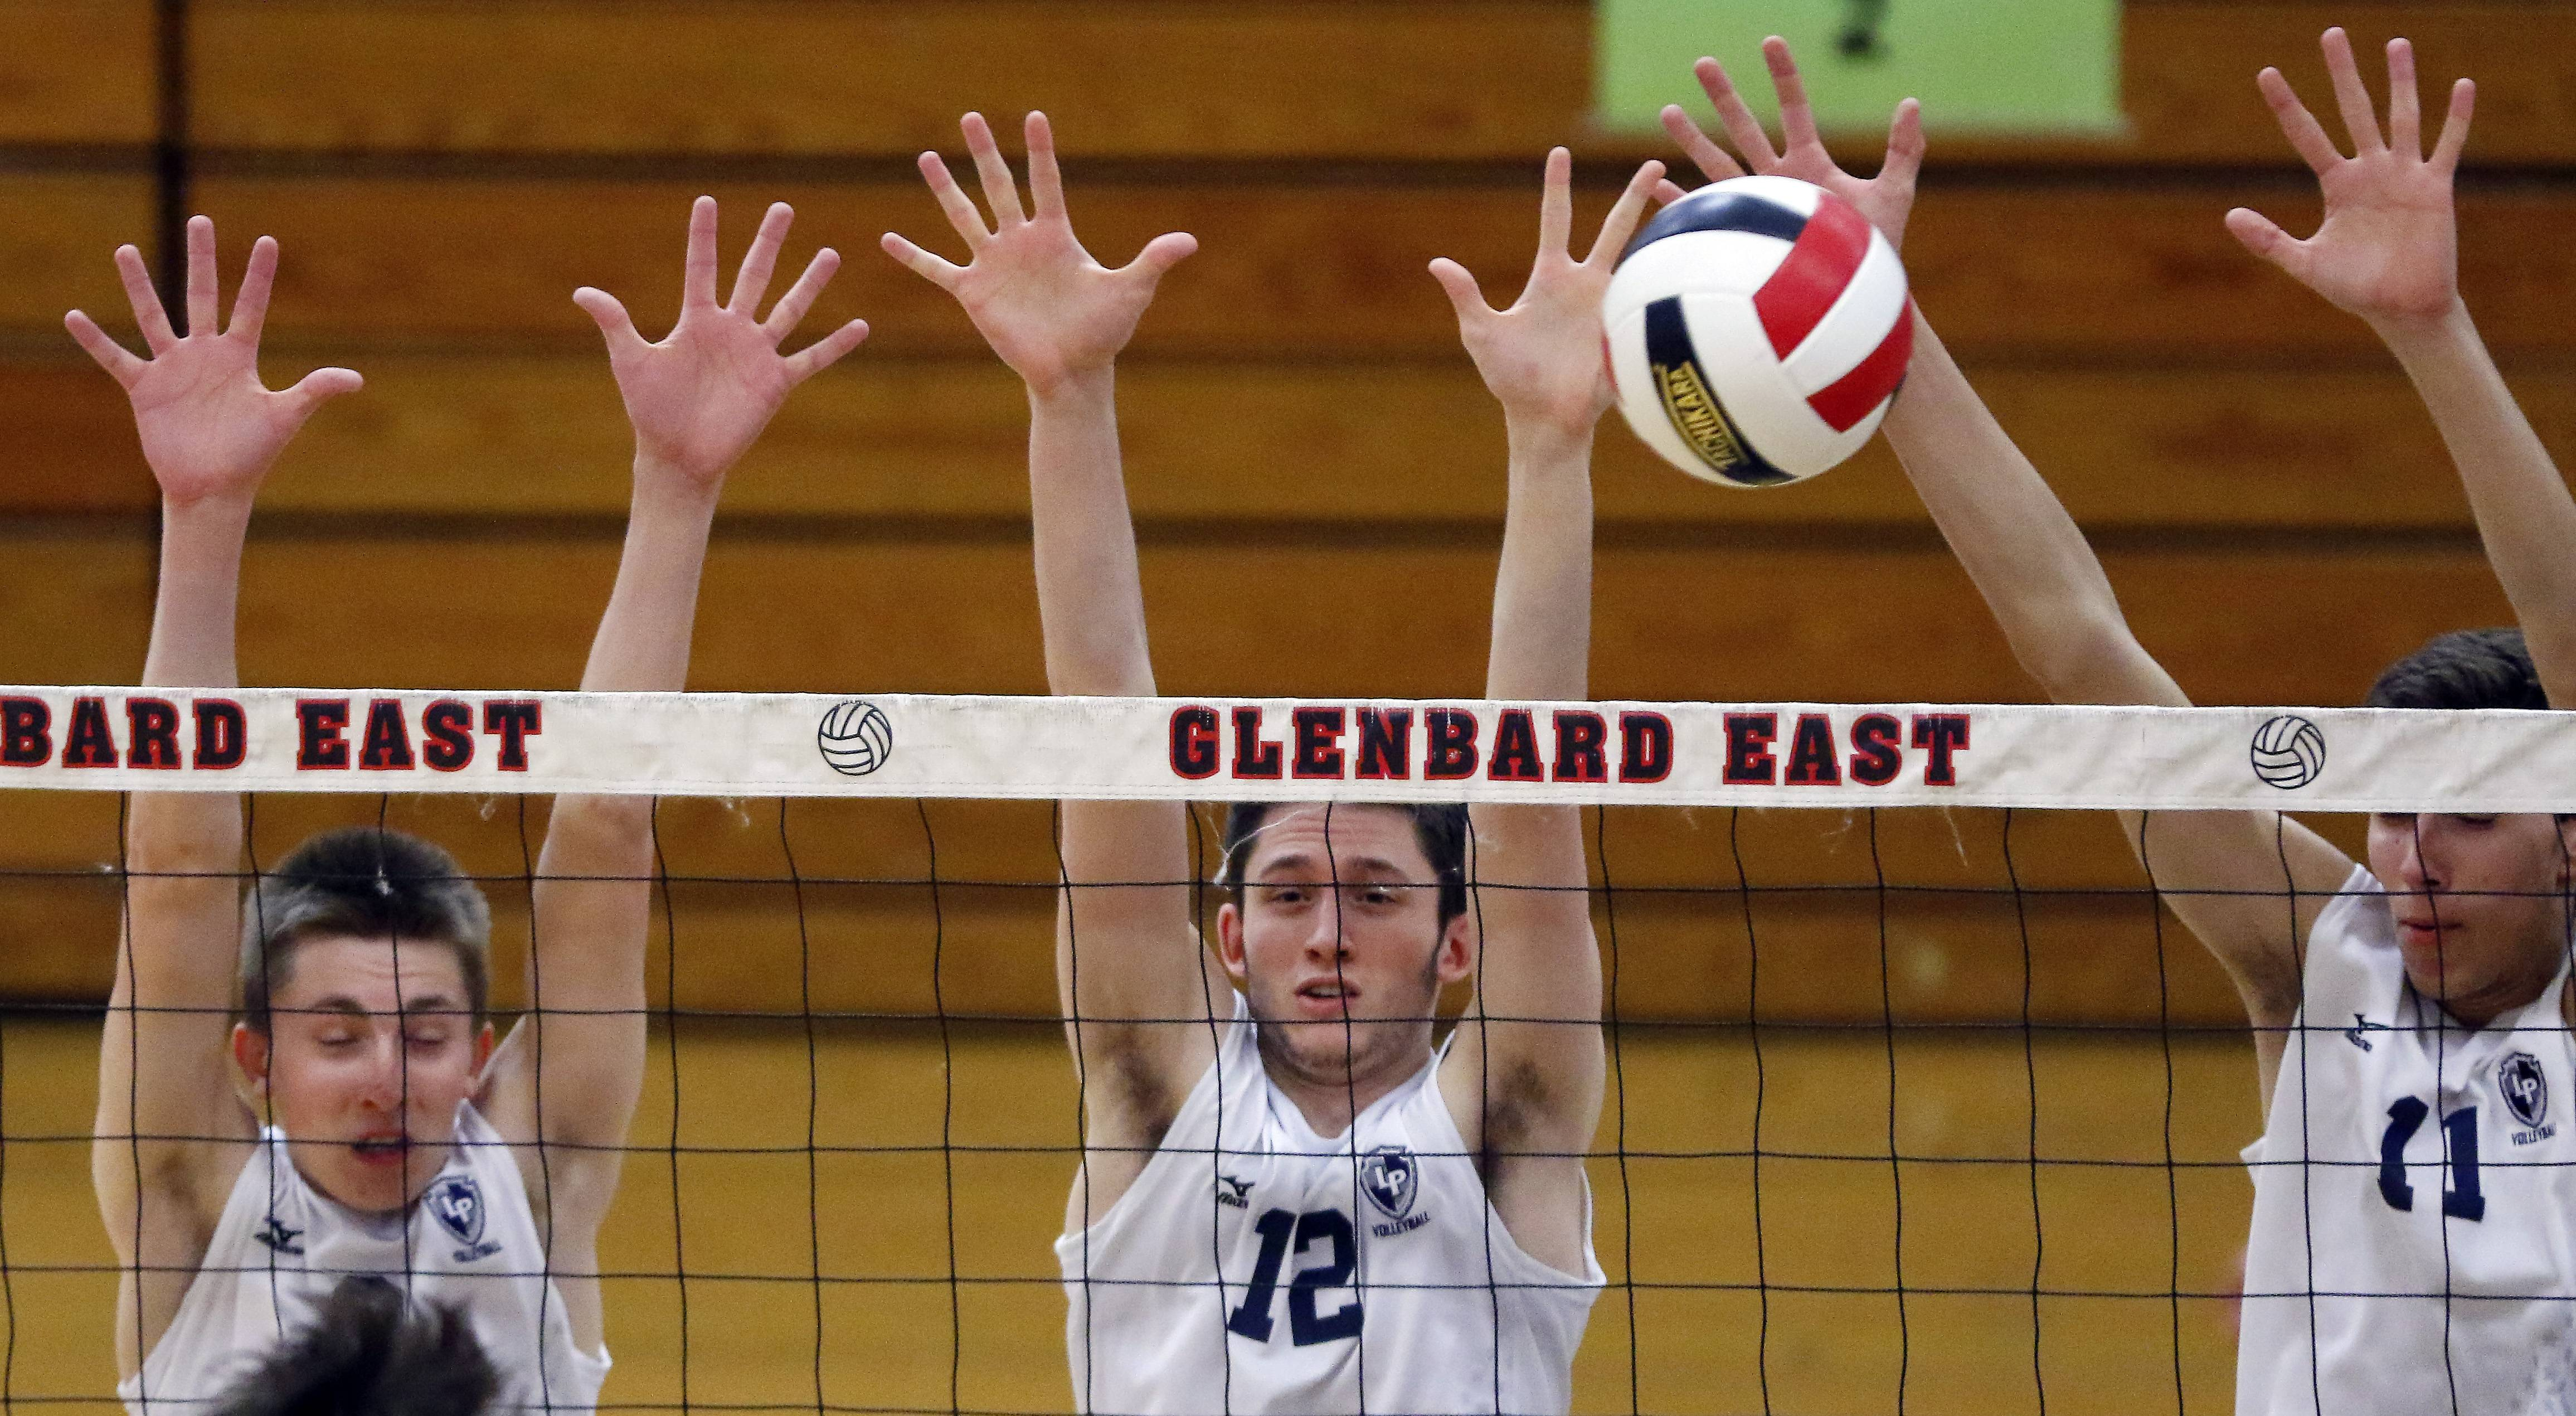 Lake Park's Bob Sampson, from left, Austin Bayner, and Nick Martinski try to block a Glenbard West shot during the Springfest boys volleyball tournament Saturday at Glenbard East High School in Lombard.